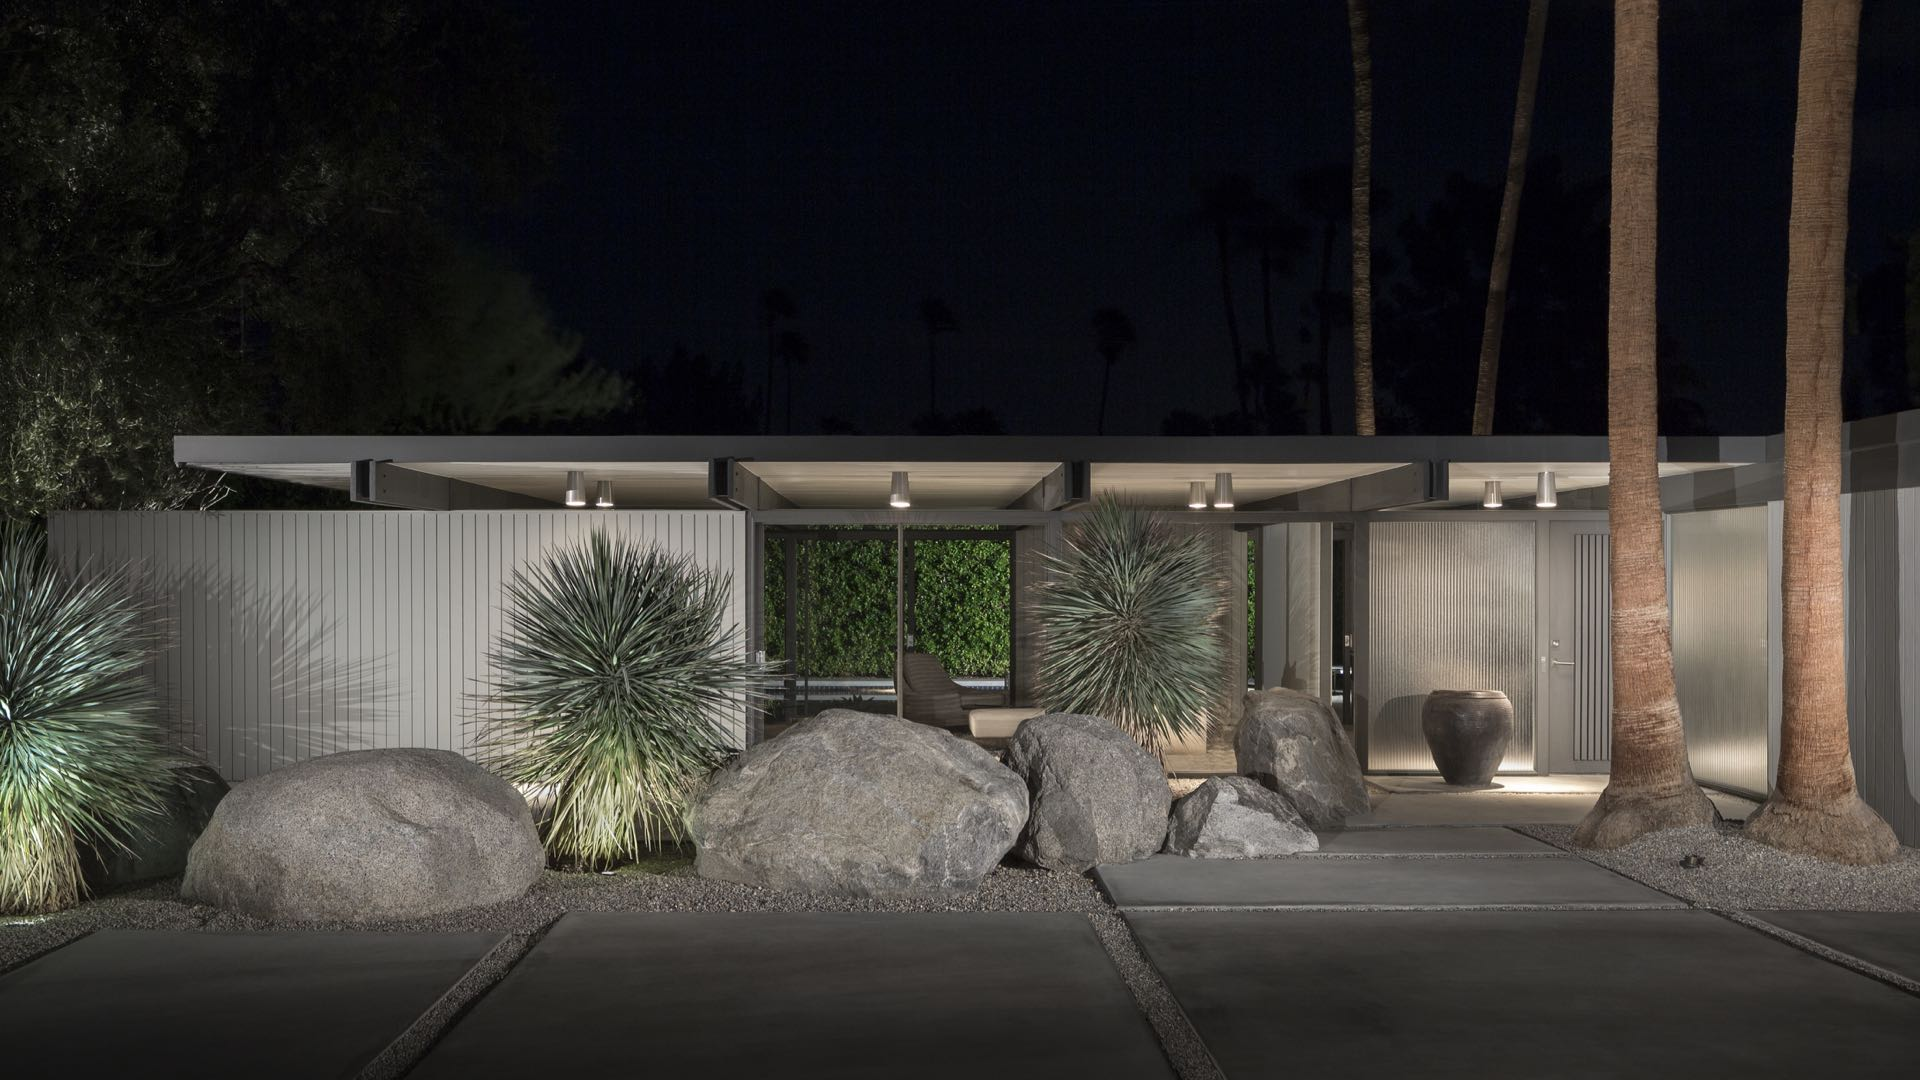 The Wexler House, Palms Springs. Image courtesy of deasypenner.com